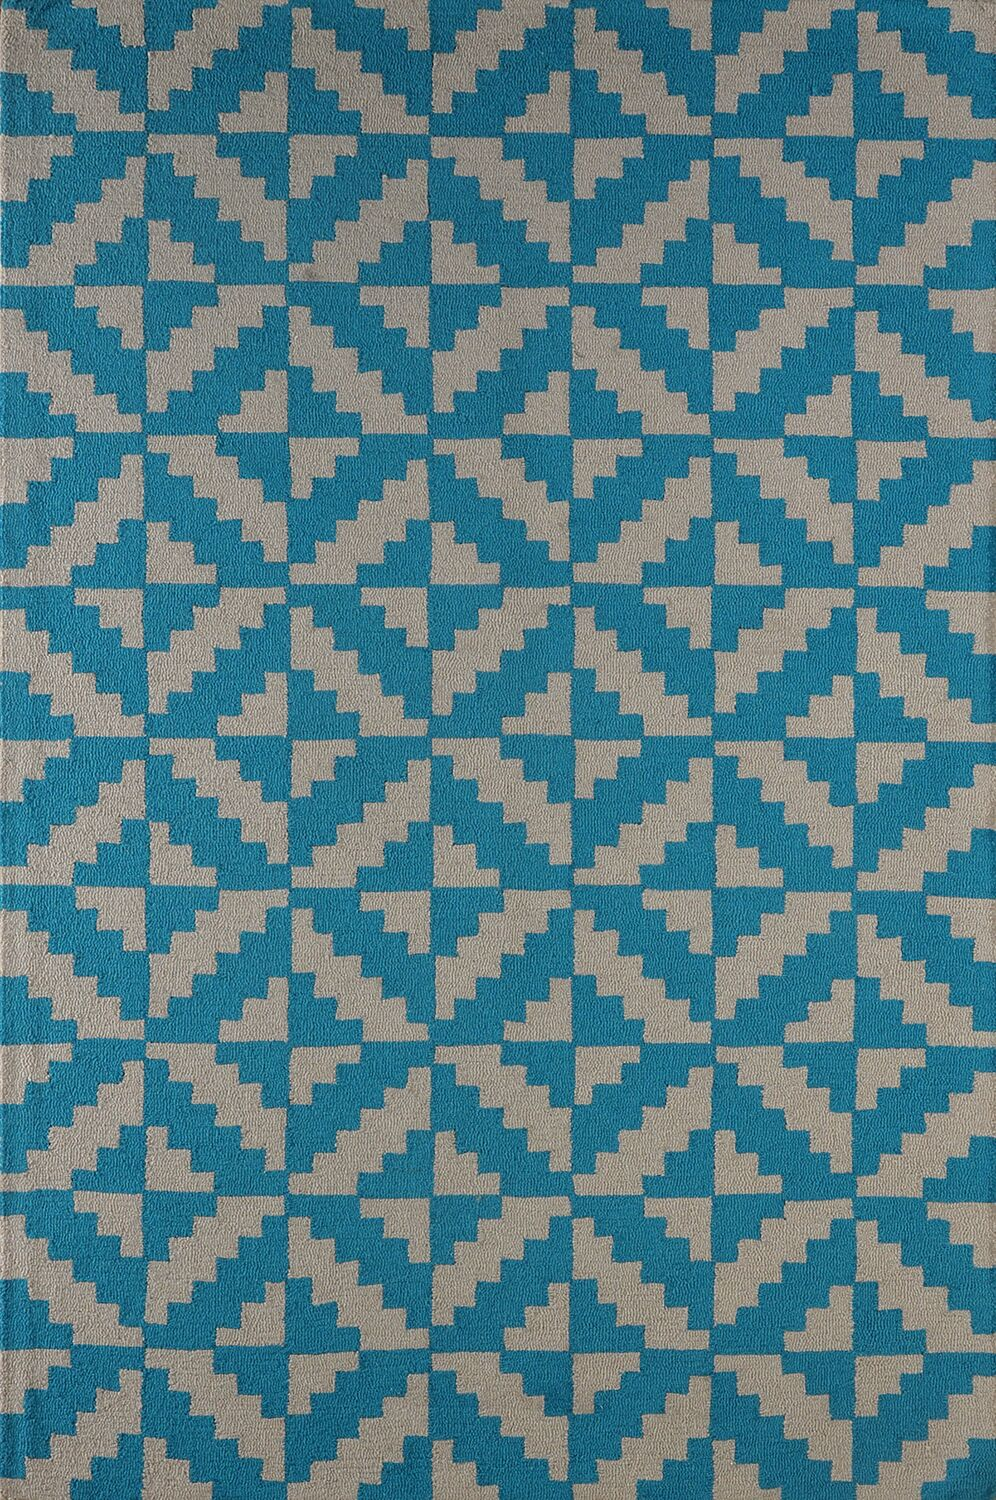 Hisey Hand-Tufted Teal Area Rug Rug Size: Rectangle 5' x 8'